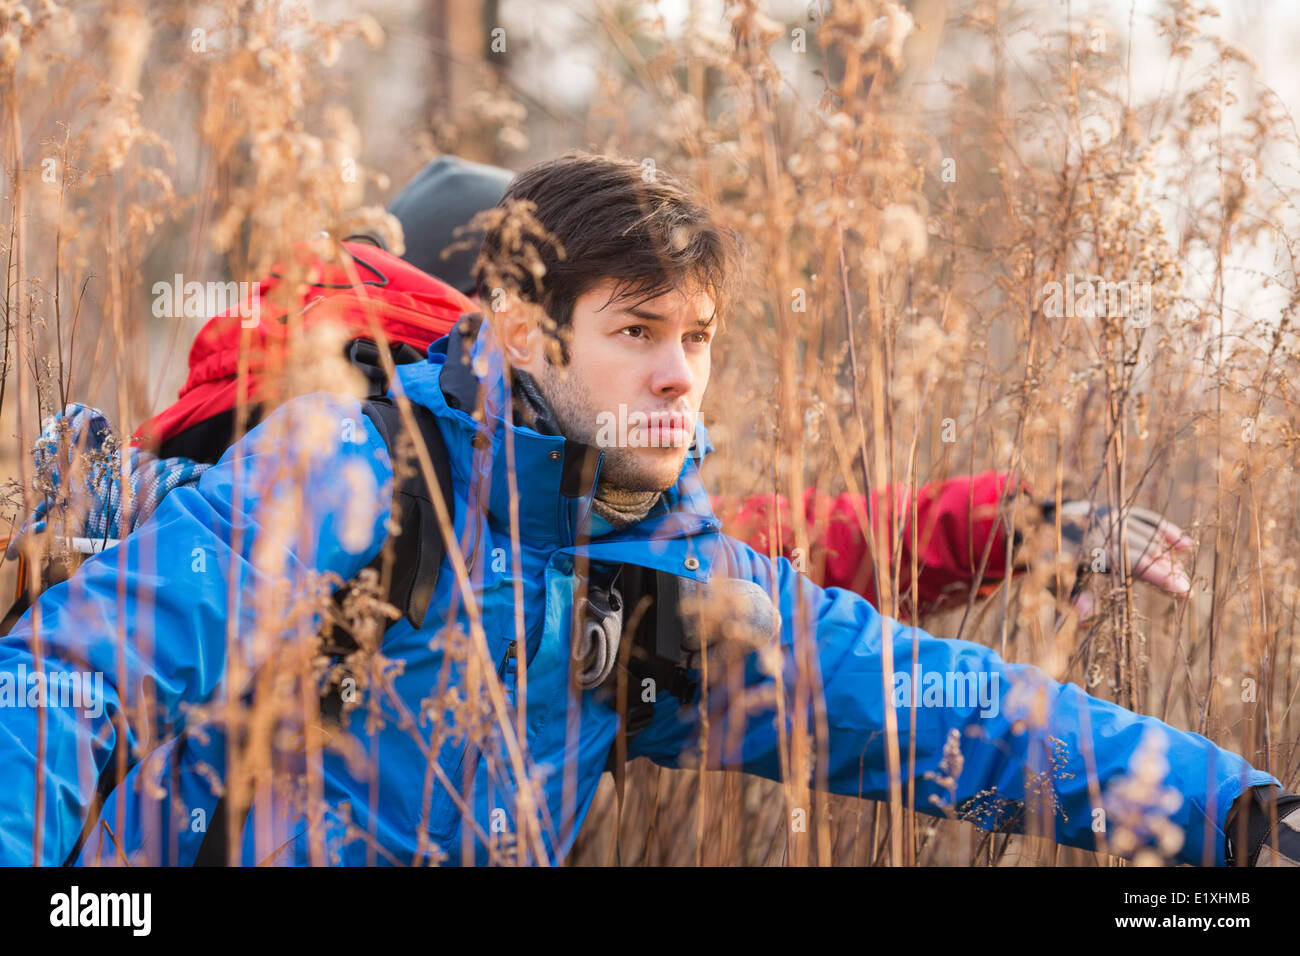 Male hikers in field - Stock Image